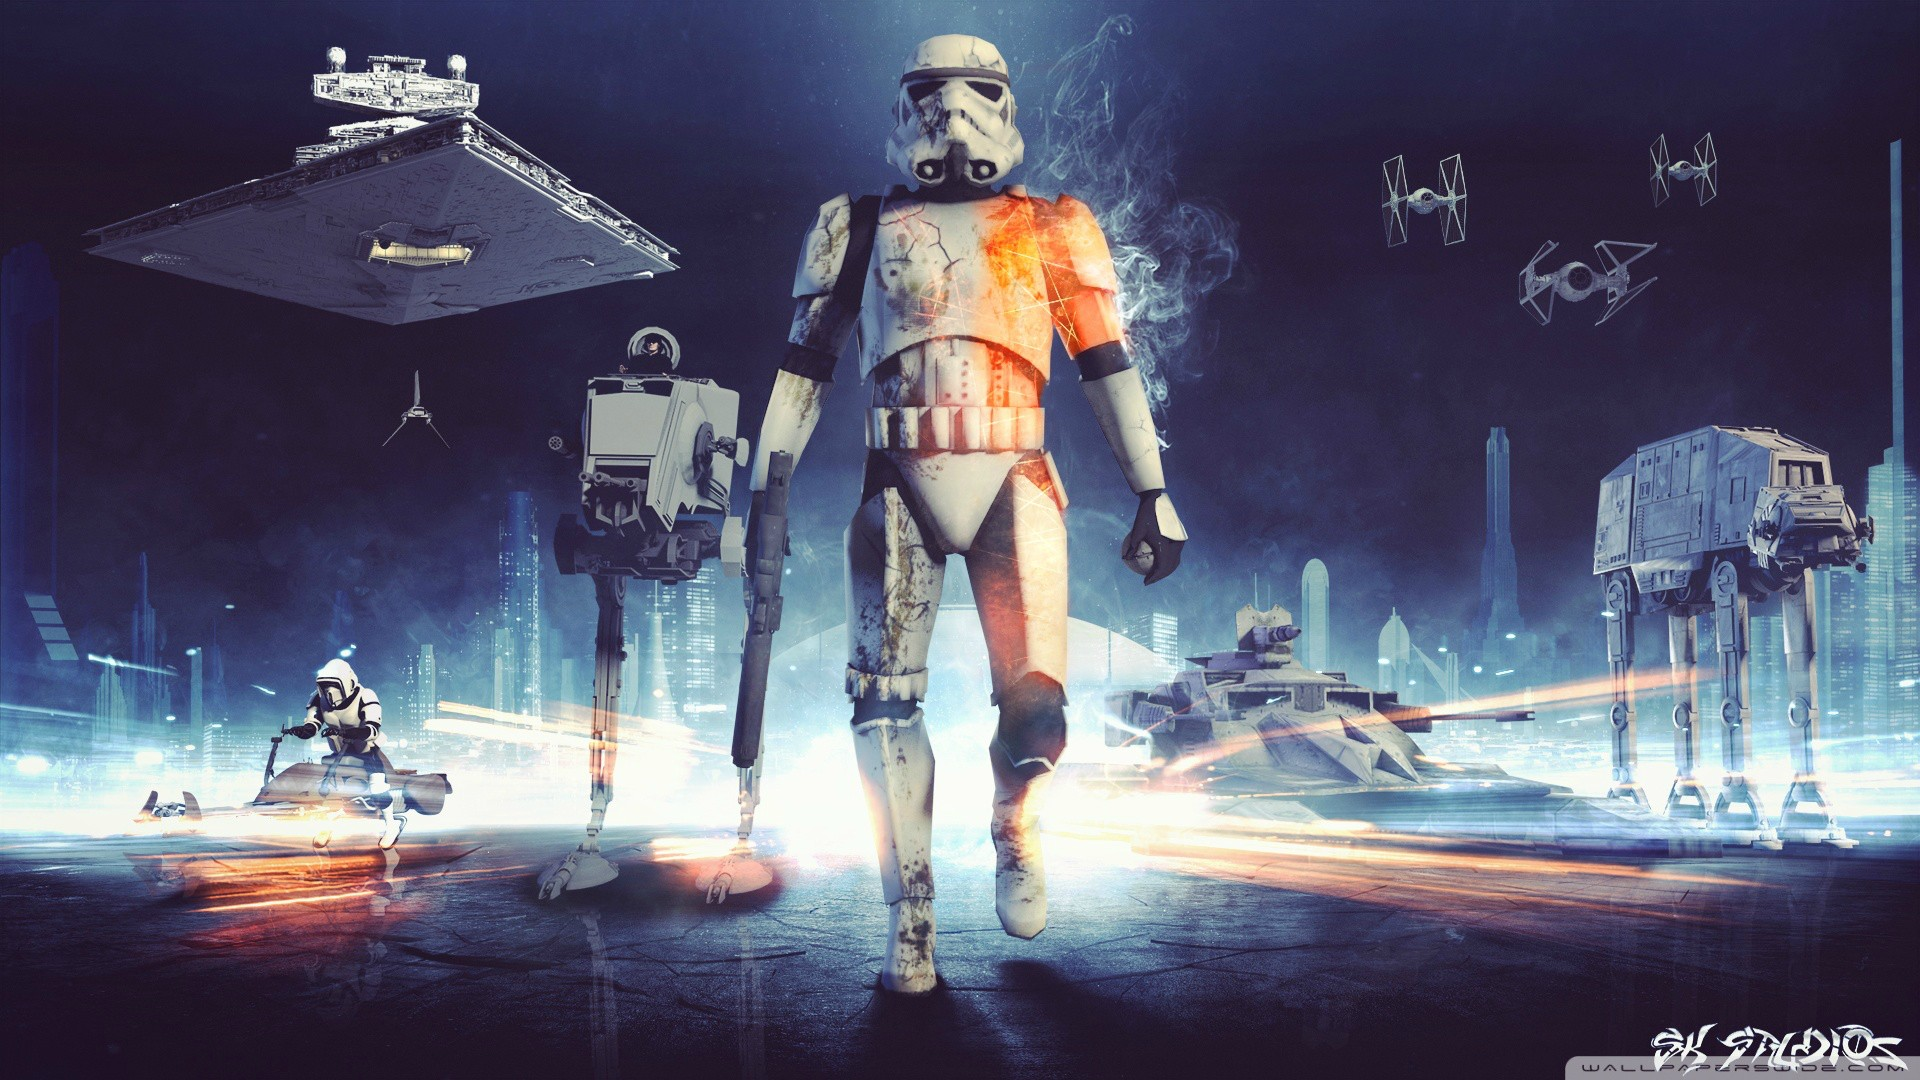 Star Wars Battlefront 2battlefield 4 Wallpaper My Favourite Gaming 1920x1080